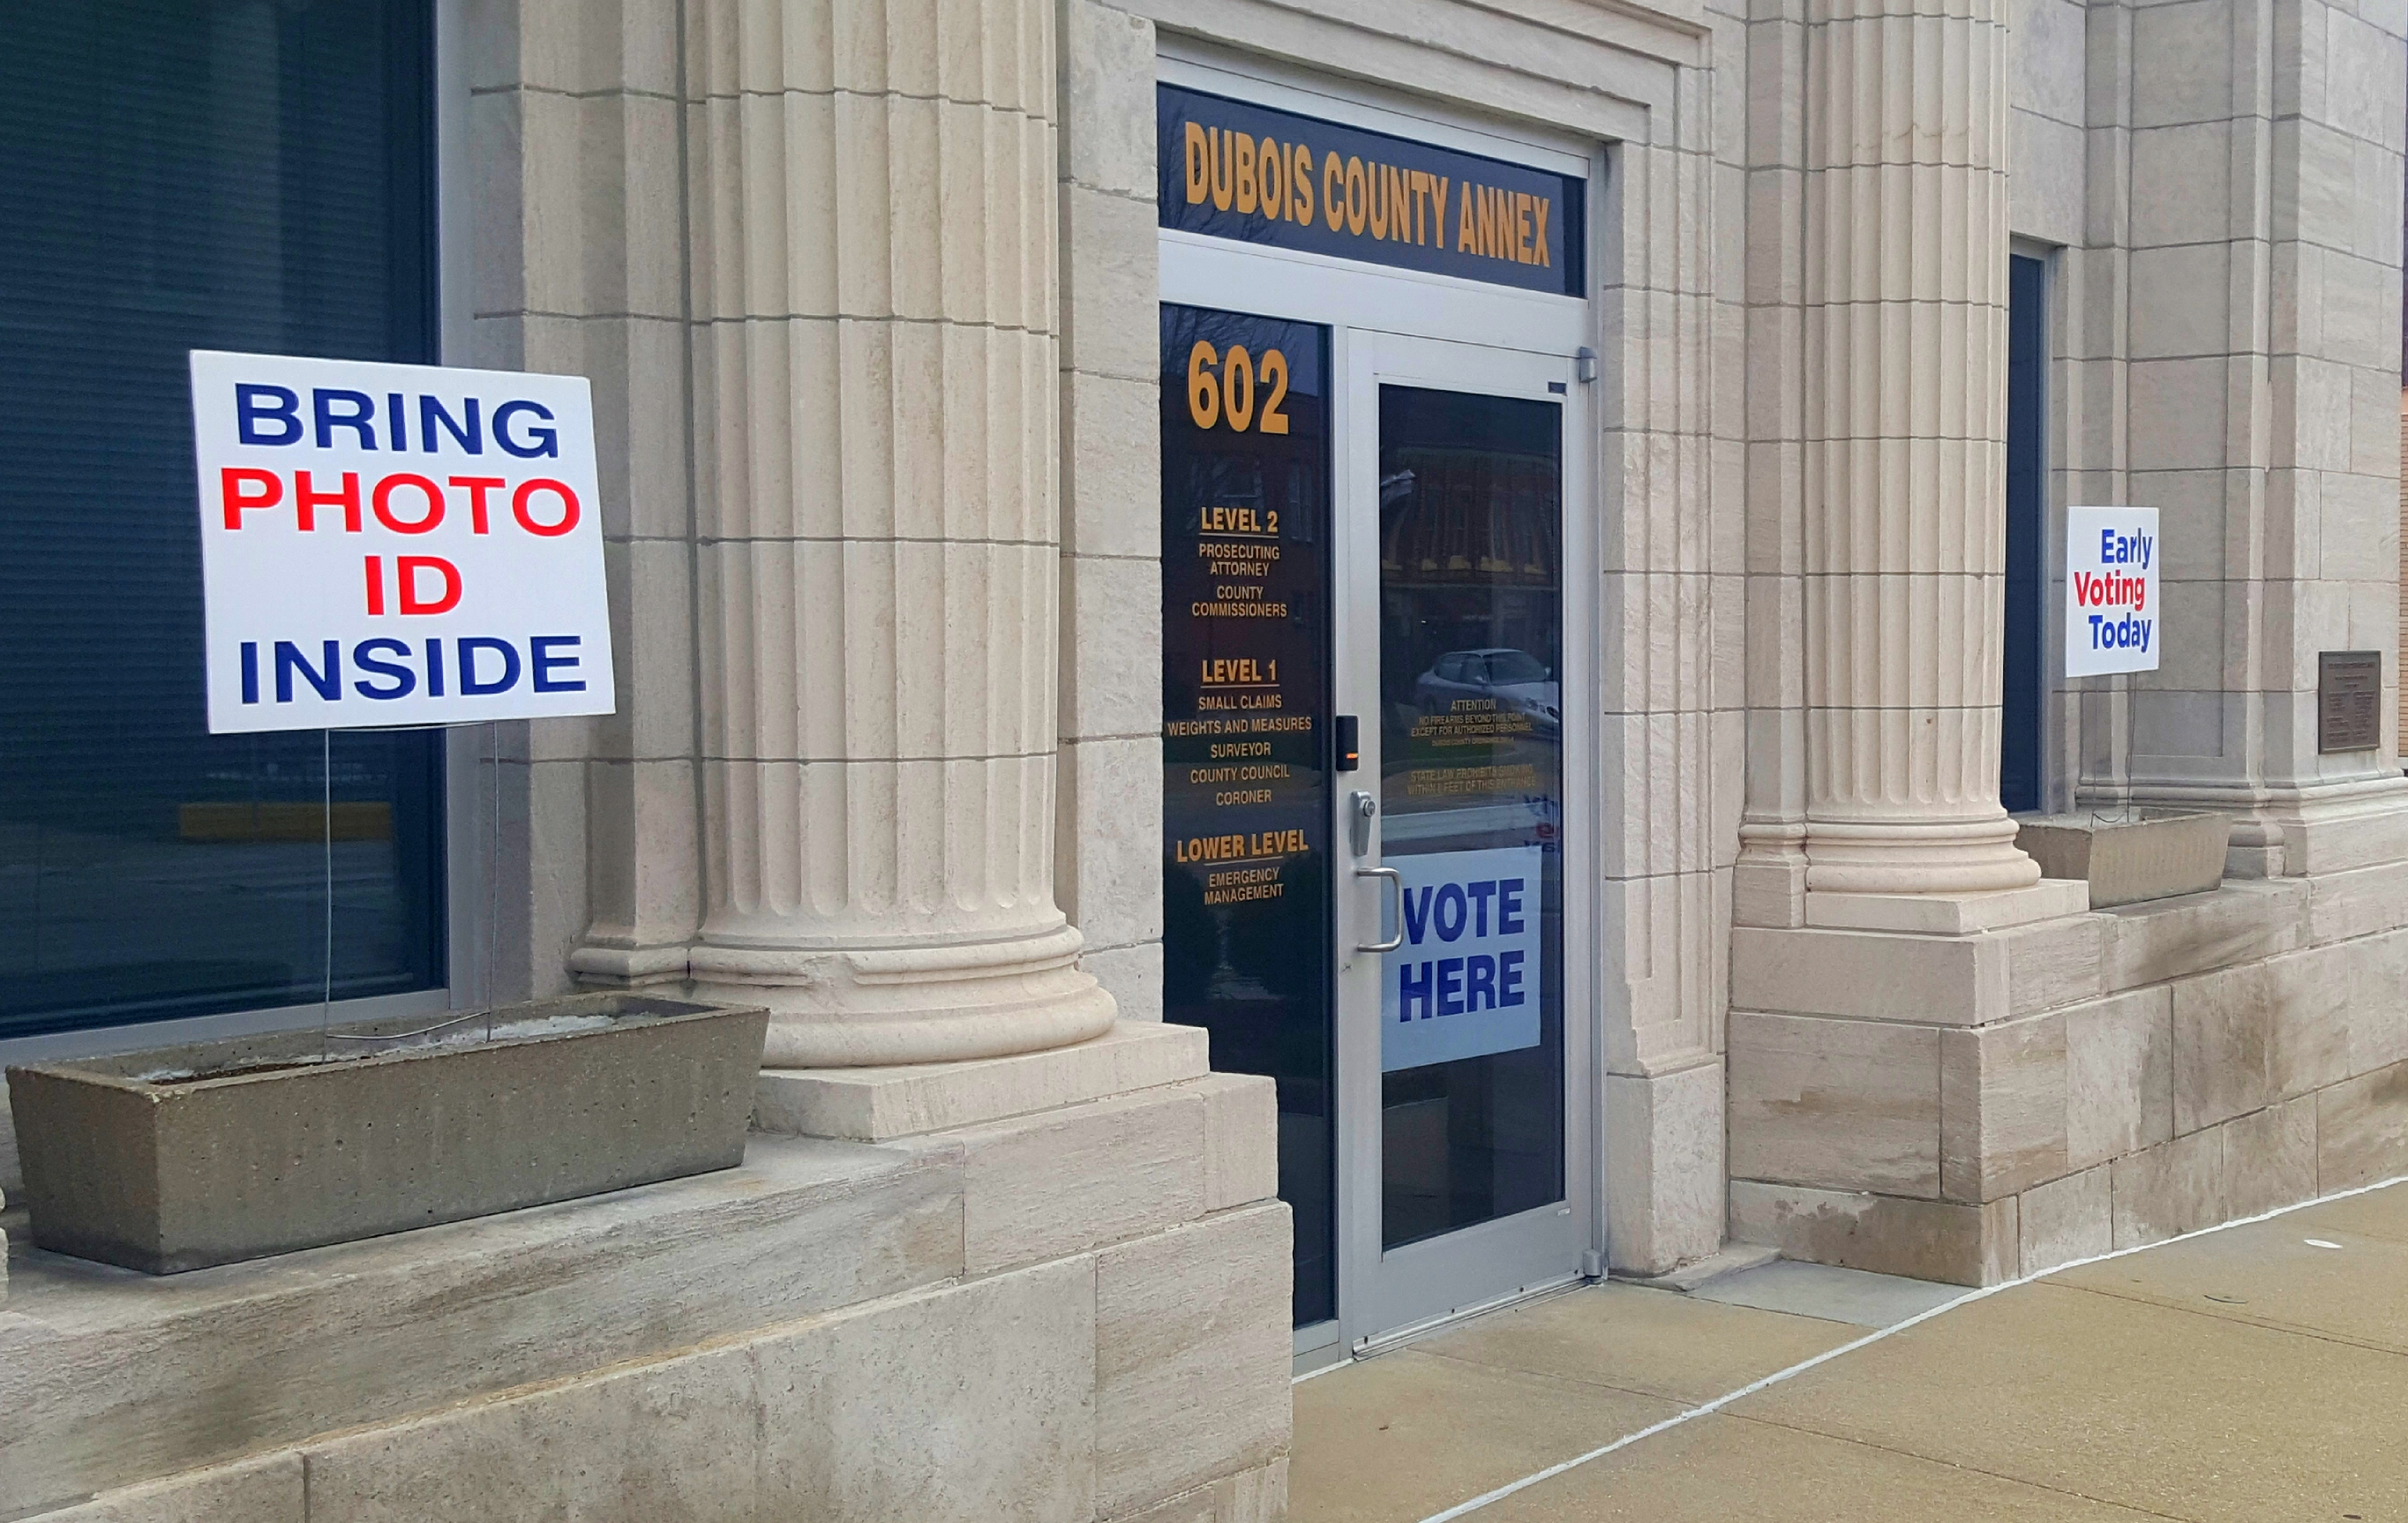 Dubois County Election Board Cuts Voting Costs as it Faces Low Voter Turnout This Year